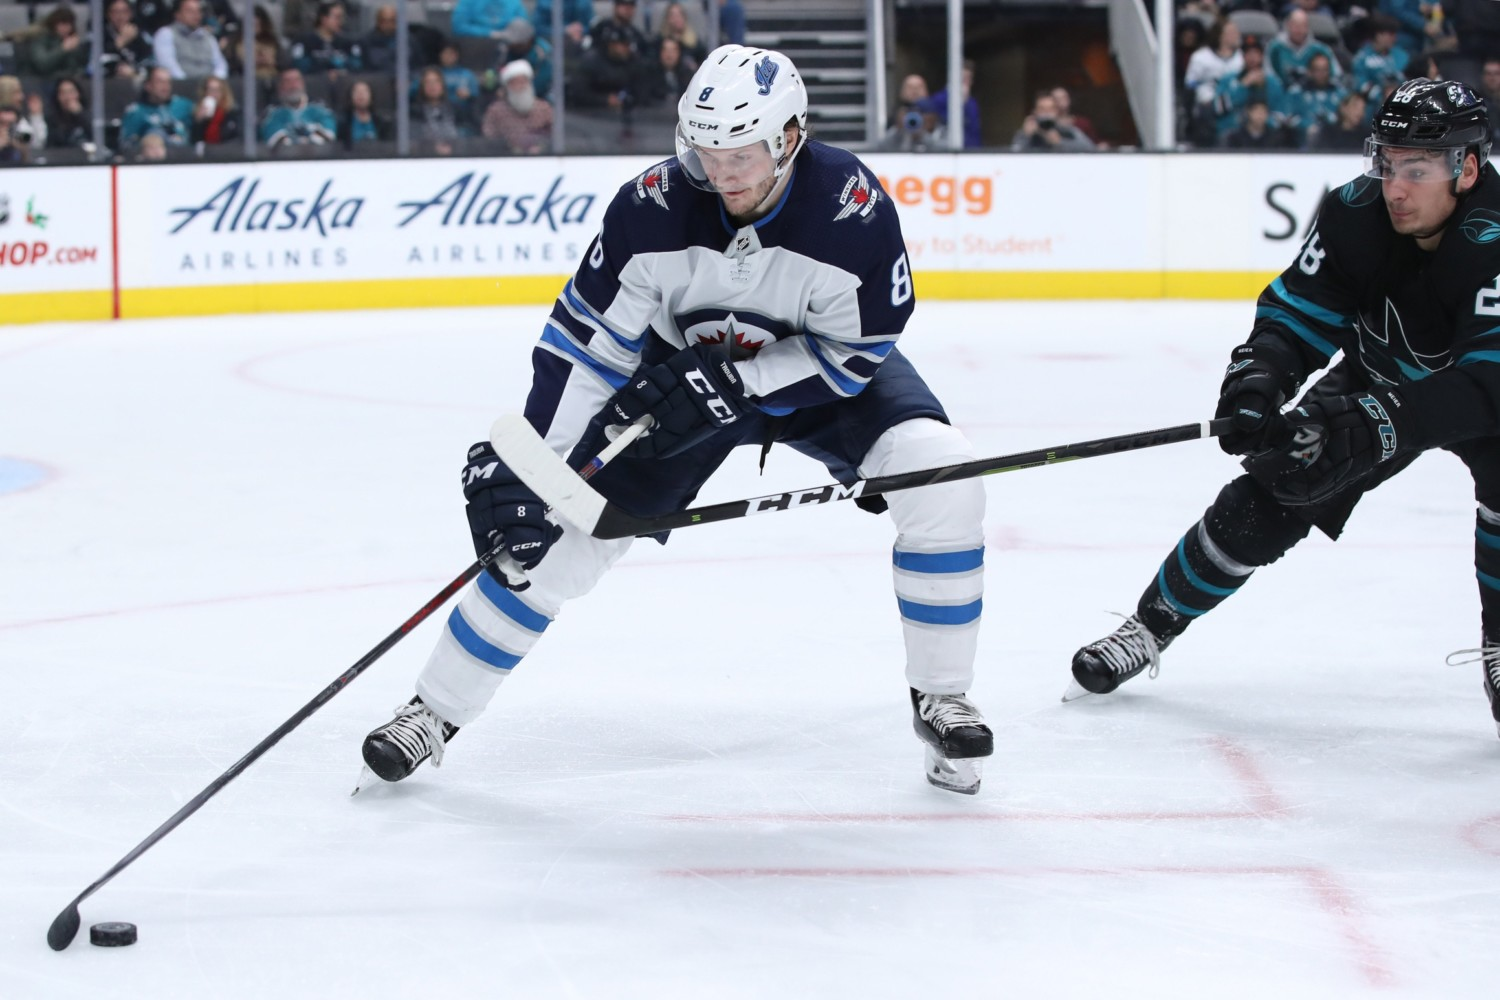 The Winnipeg Jets have some big decisions to make regarding Jacob Trouba if he's not interested in staying long-term.